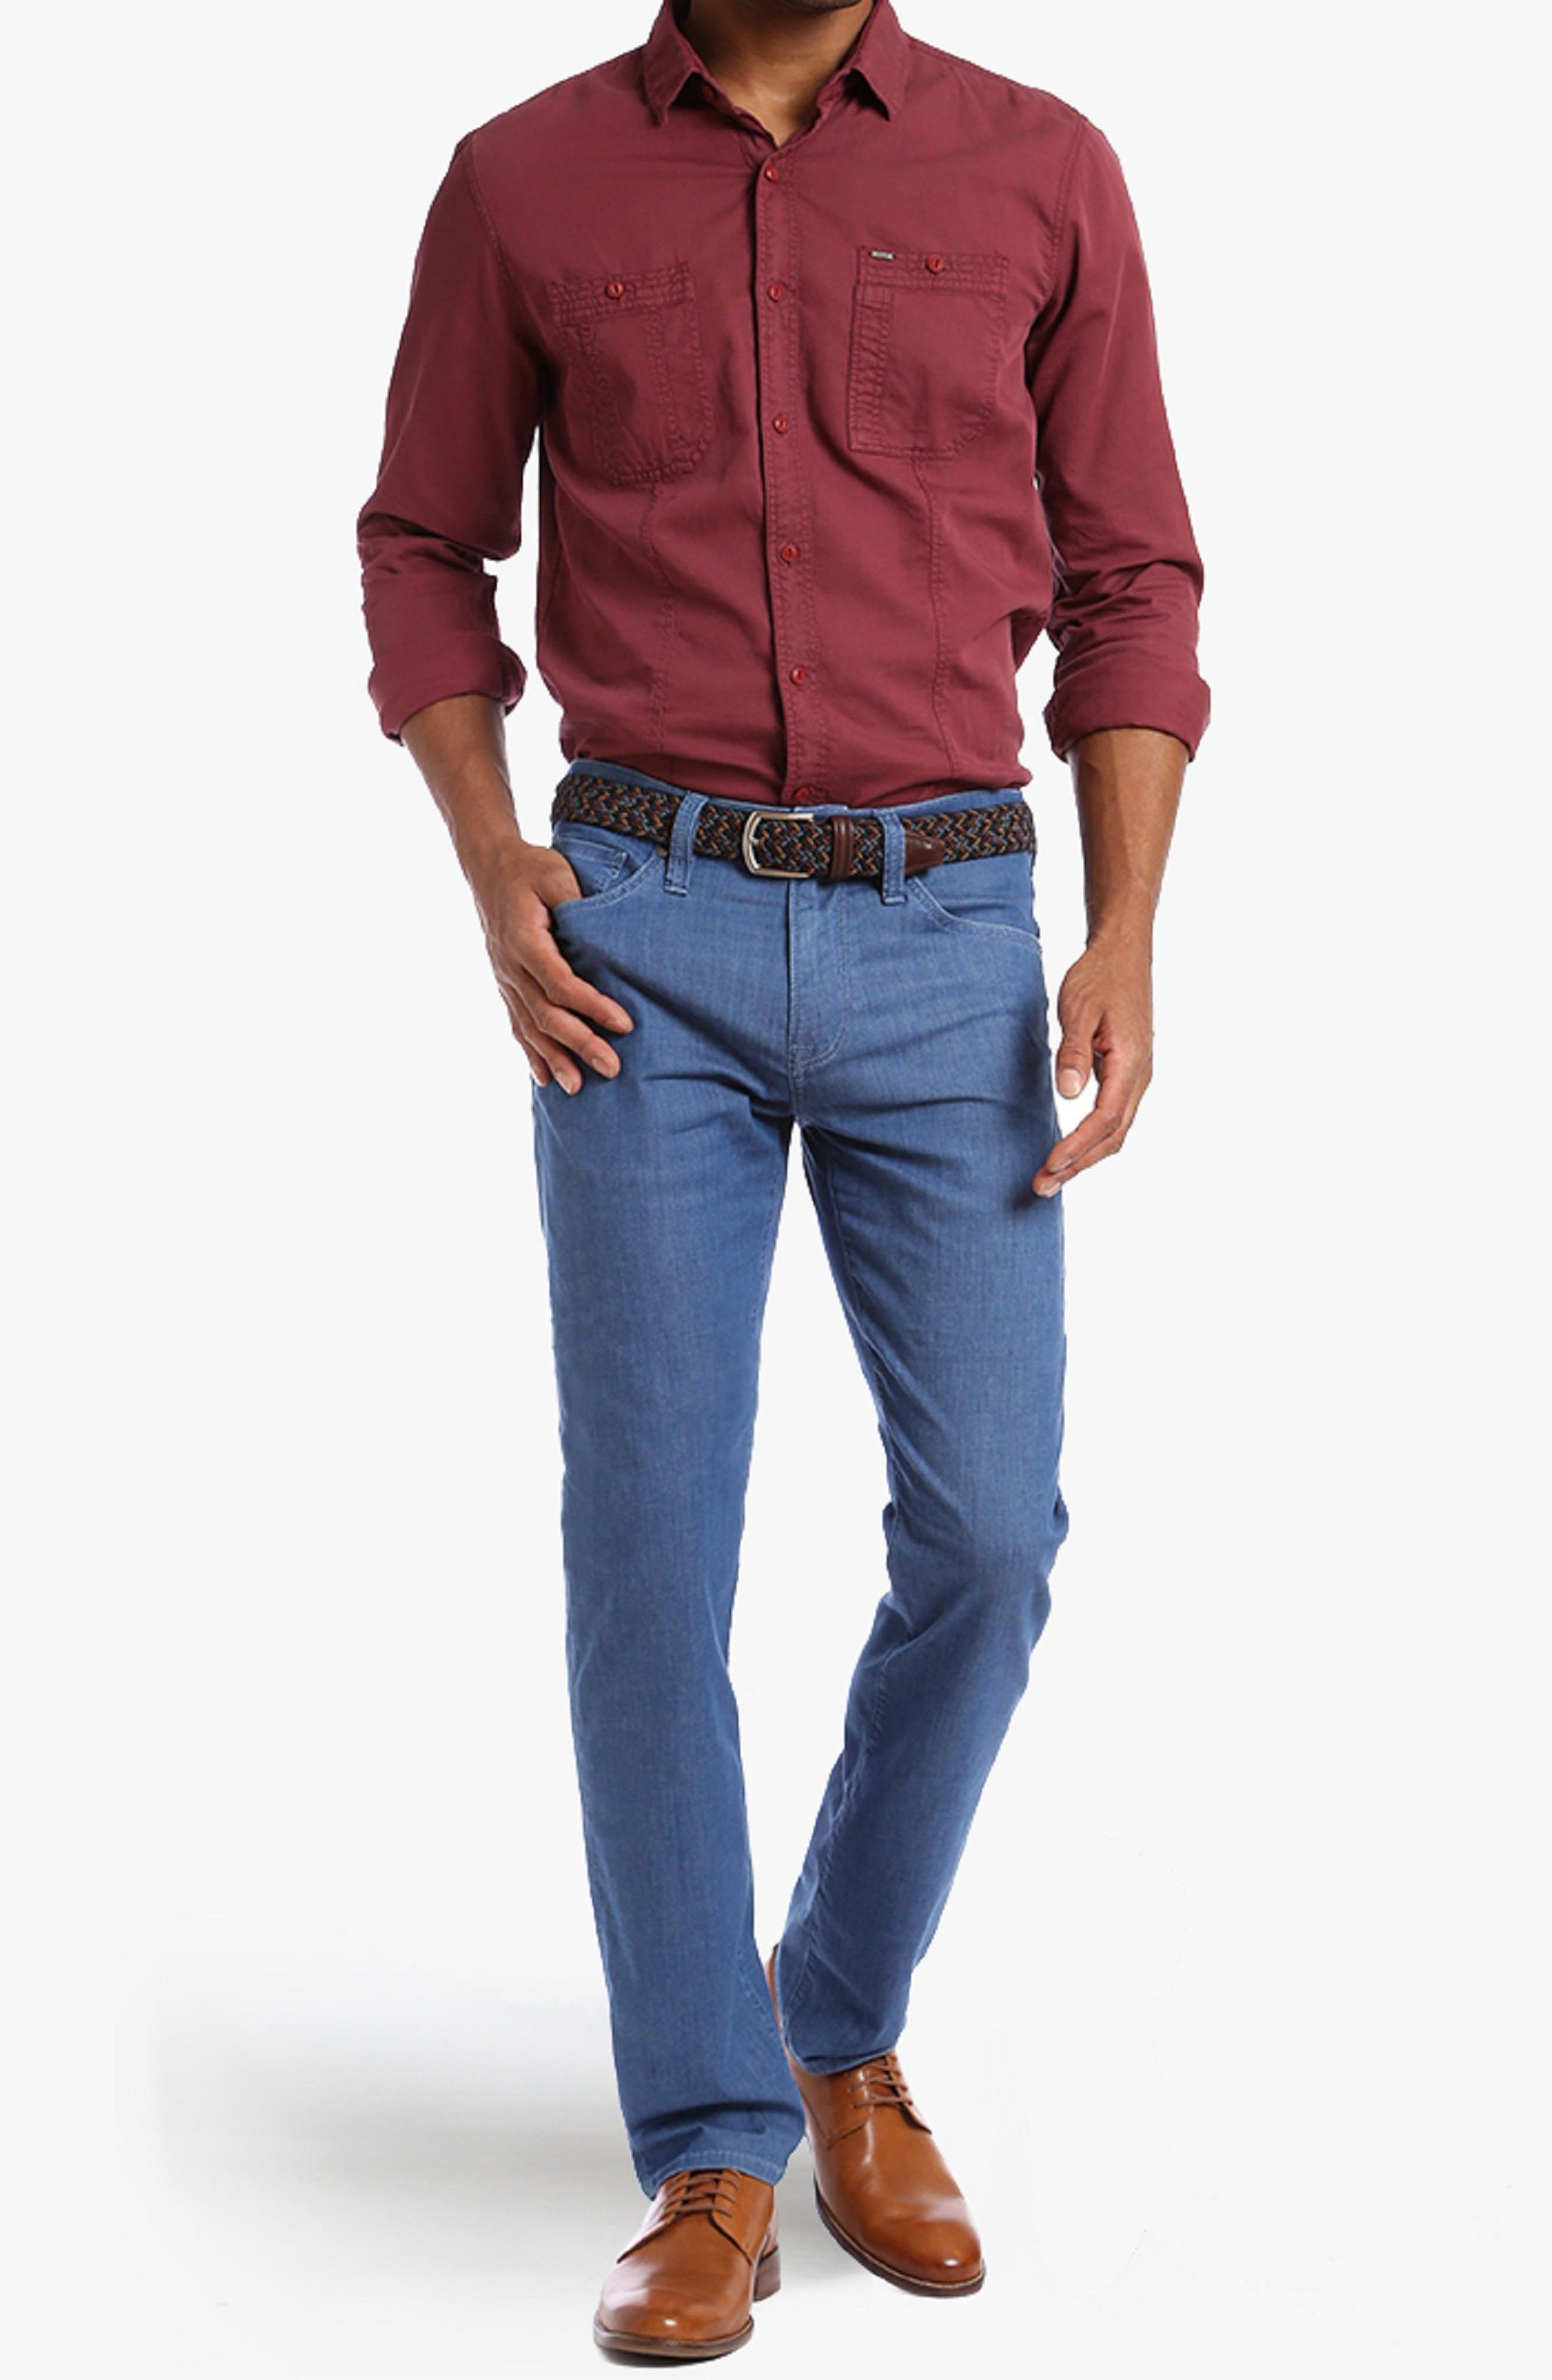 Courage Straight Fit Jeans,                             Alternate thumbnail 4, color,                             MID MAUI DENIM